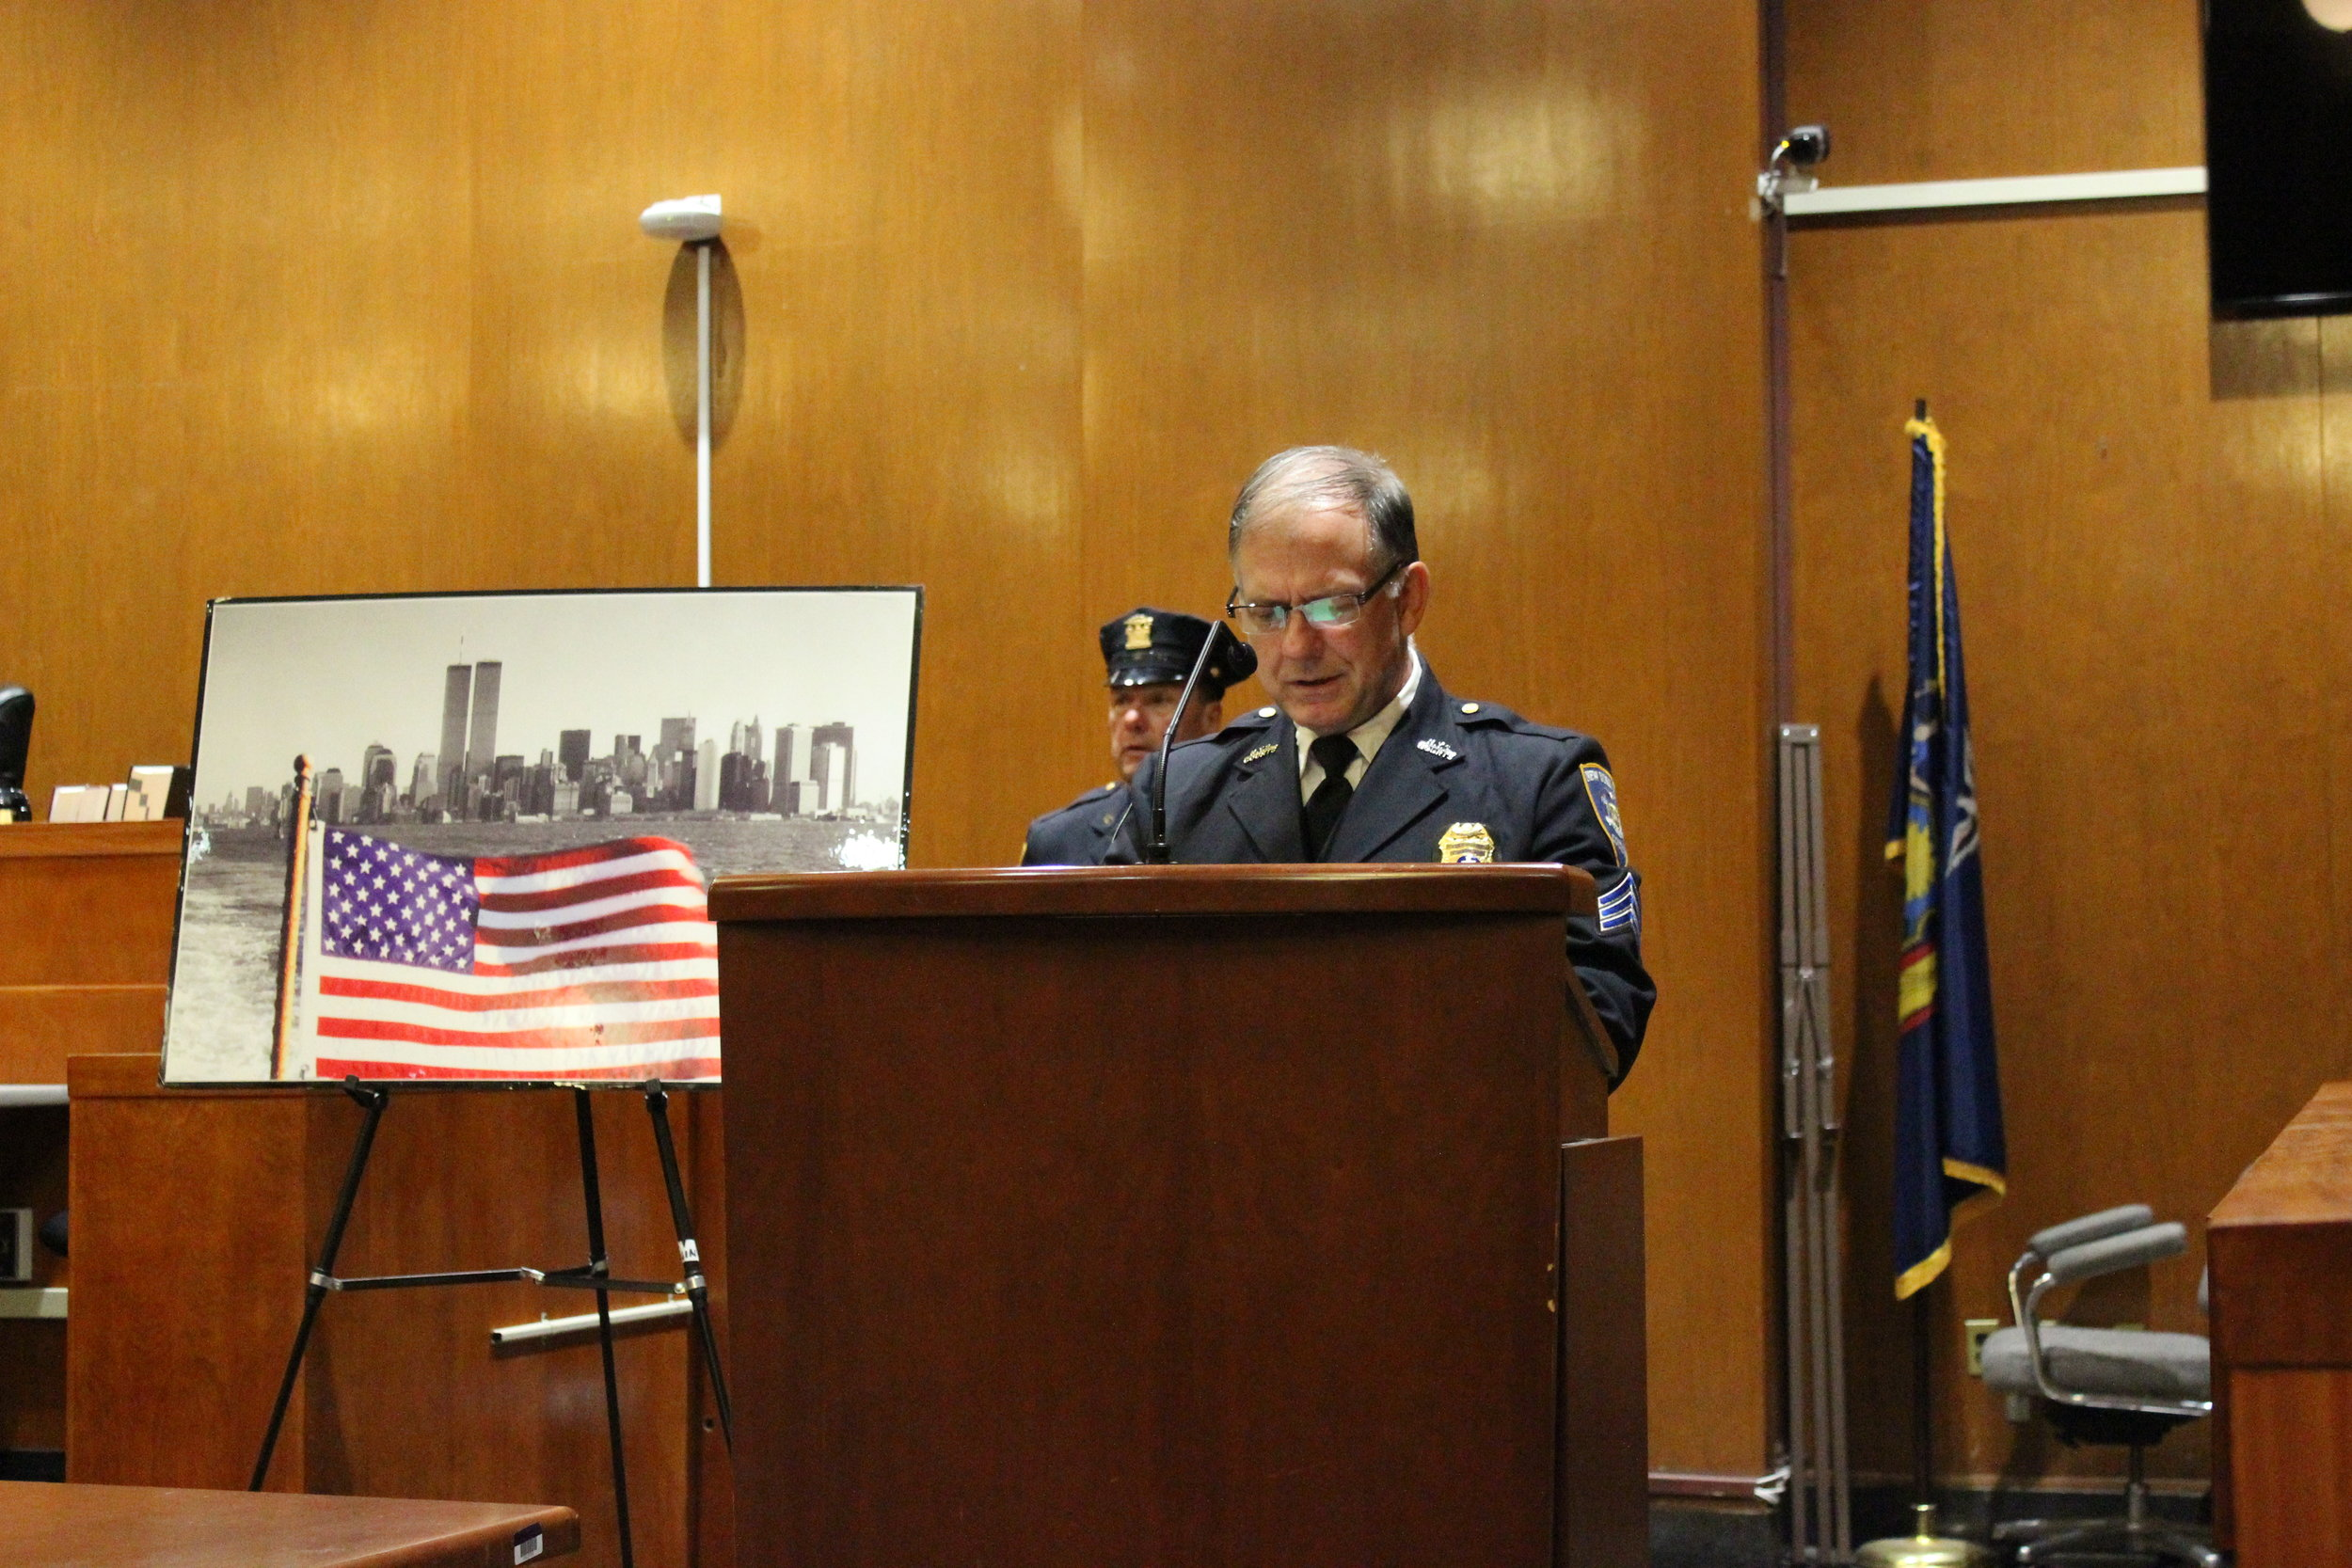 Retired Sgt. Frank Barry addresses the crowd as a chaplain in the Fraternal Order of Court Officers.  Eagle  photos by Victoria Merlino.